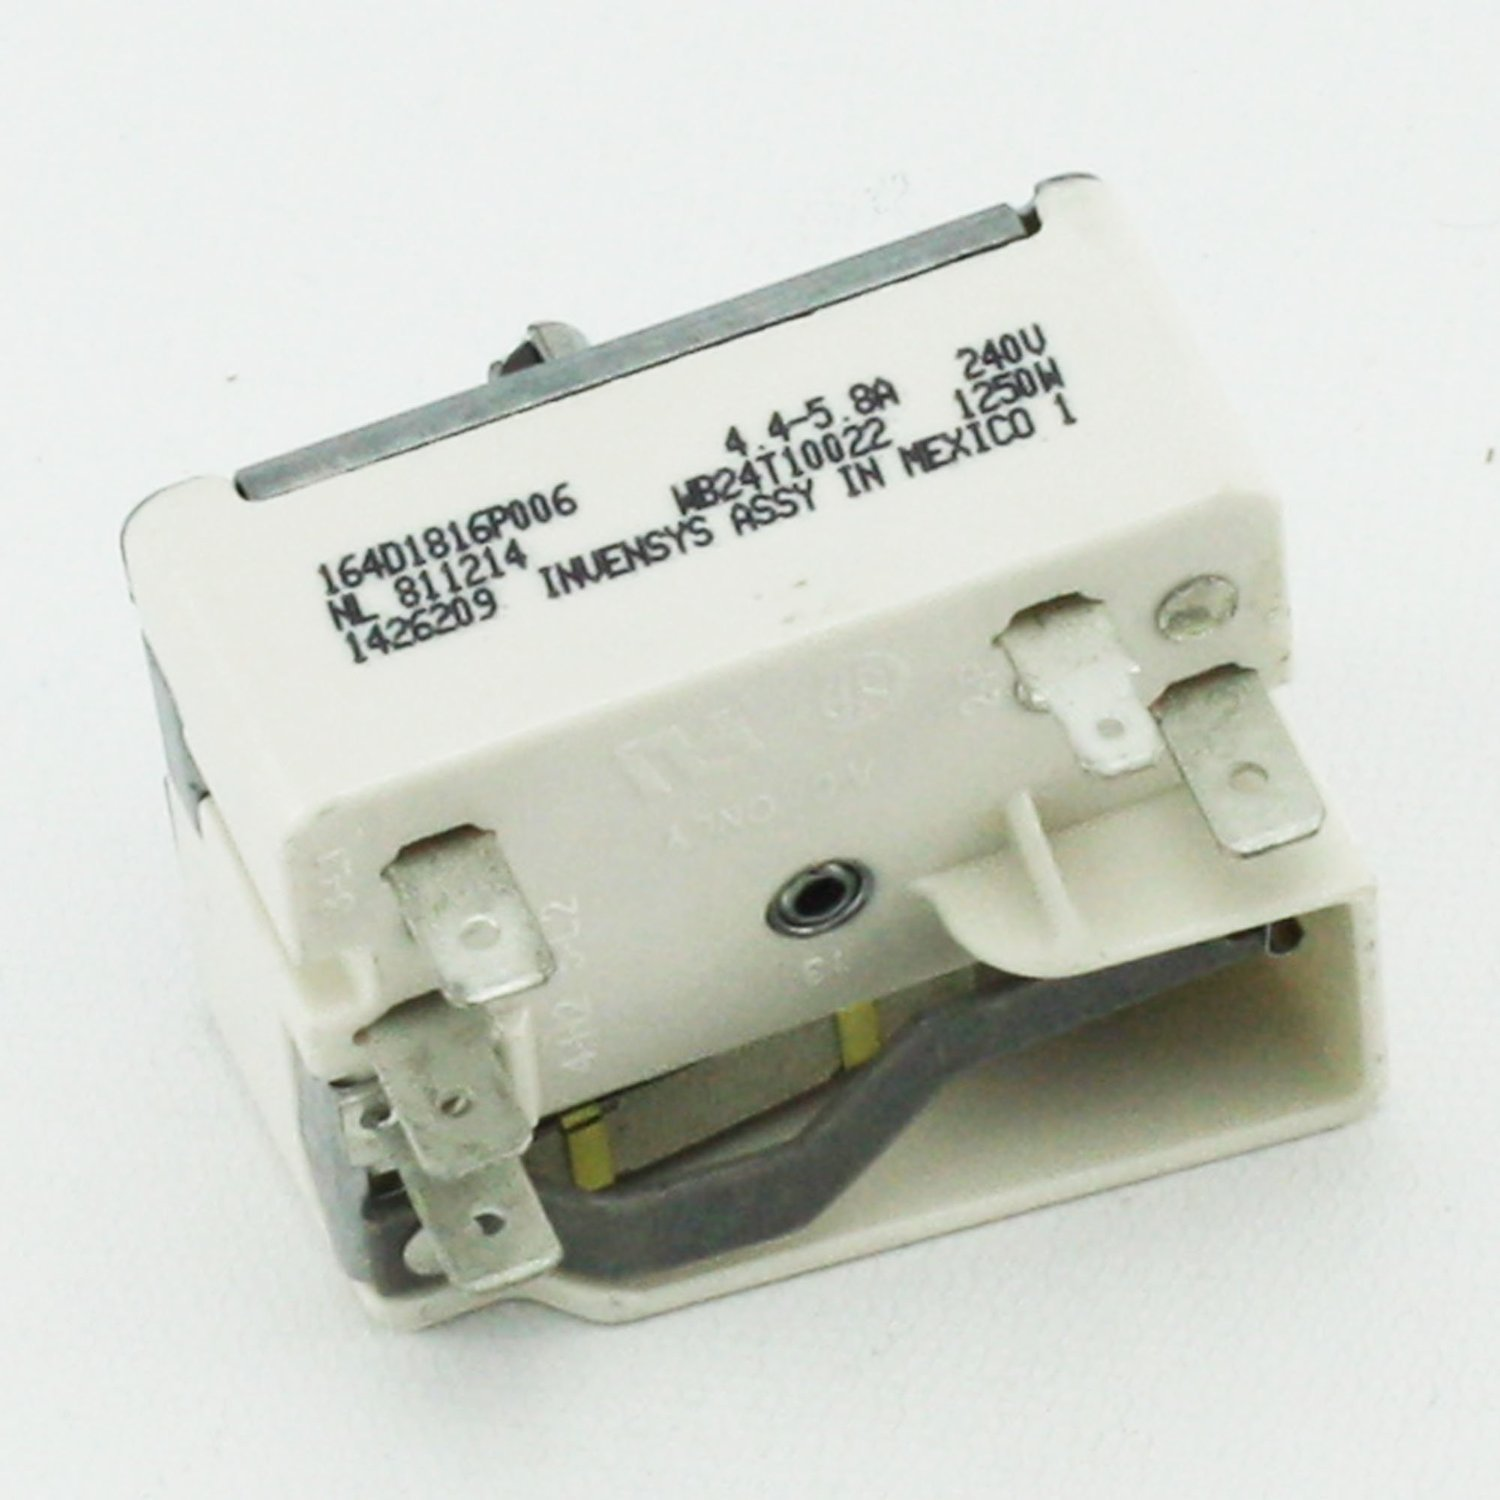 Edgewater Parts WB24T10022 Oven Surface Unit Infinite Switch Compatible with GE Oven